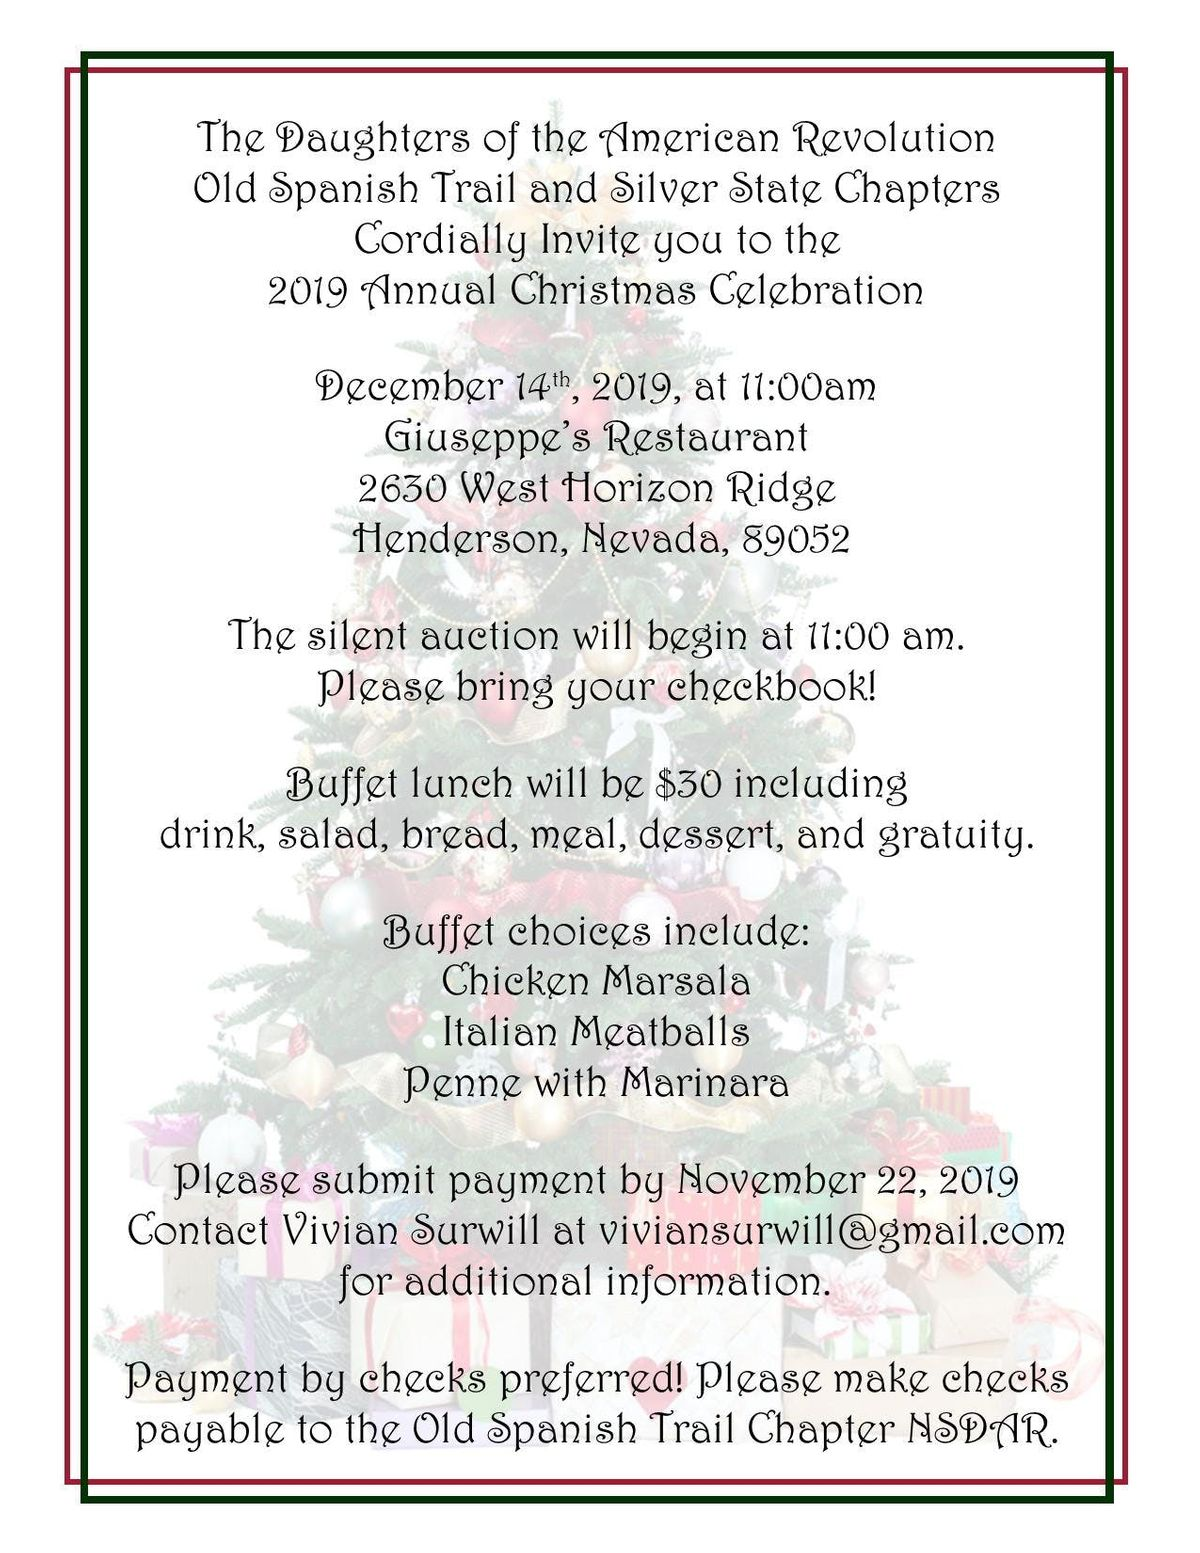 Old Spanish Trail and Silver State Chapters Christmas Luncheon 2019